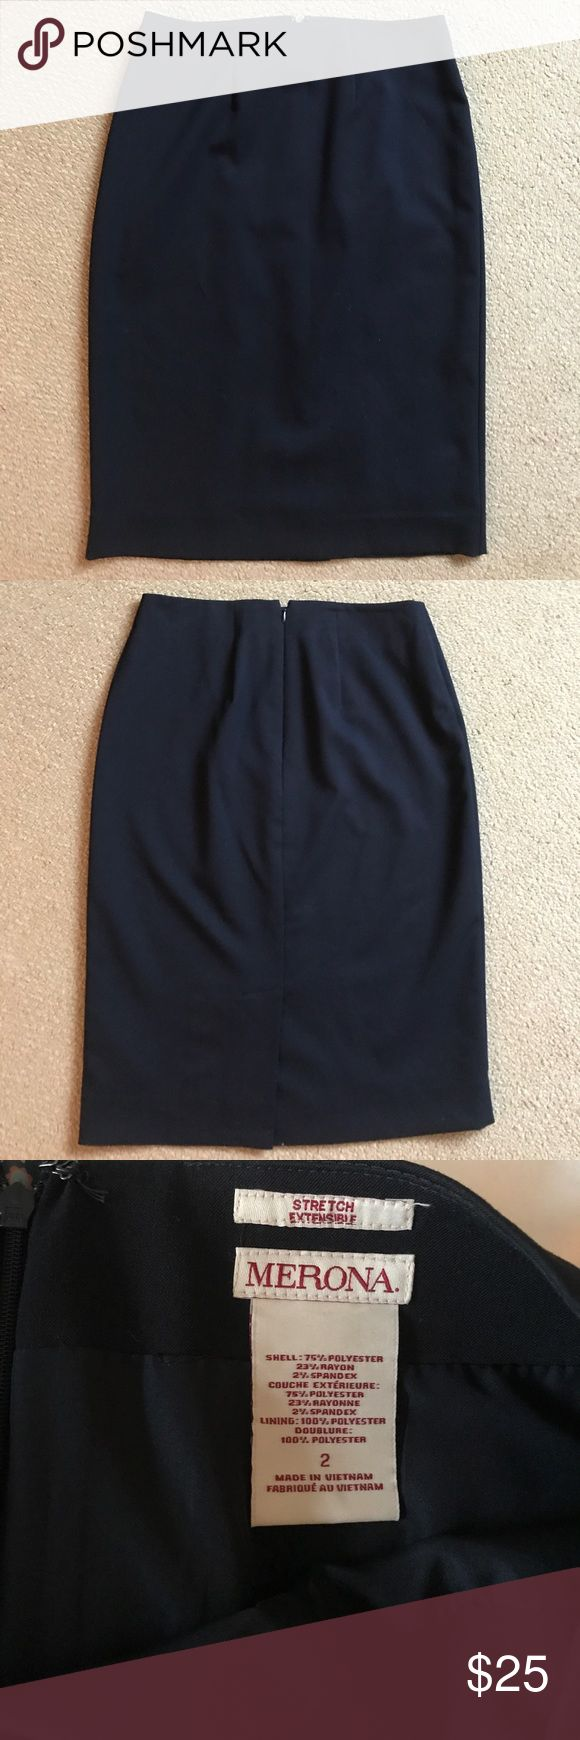 Navy pencil skirt Navy pencil skirt. New condition. Skirts Pencil